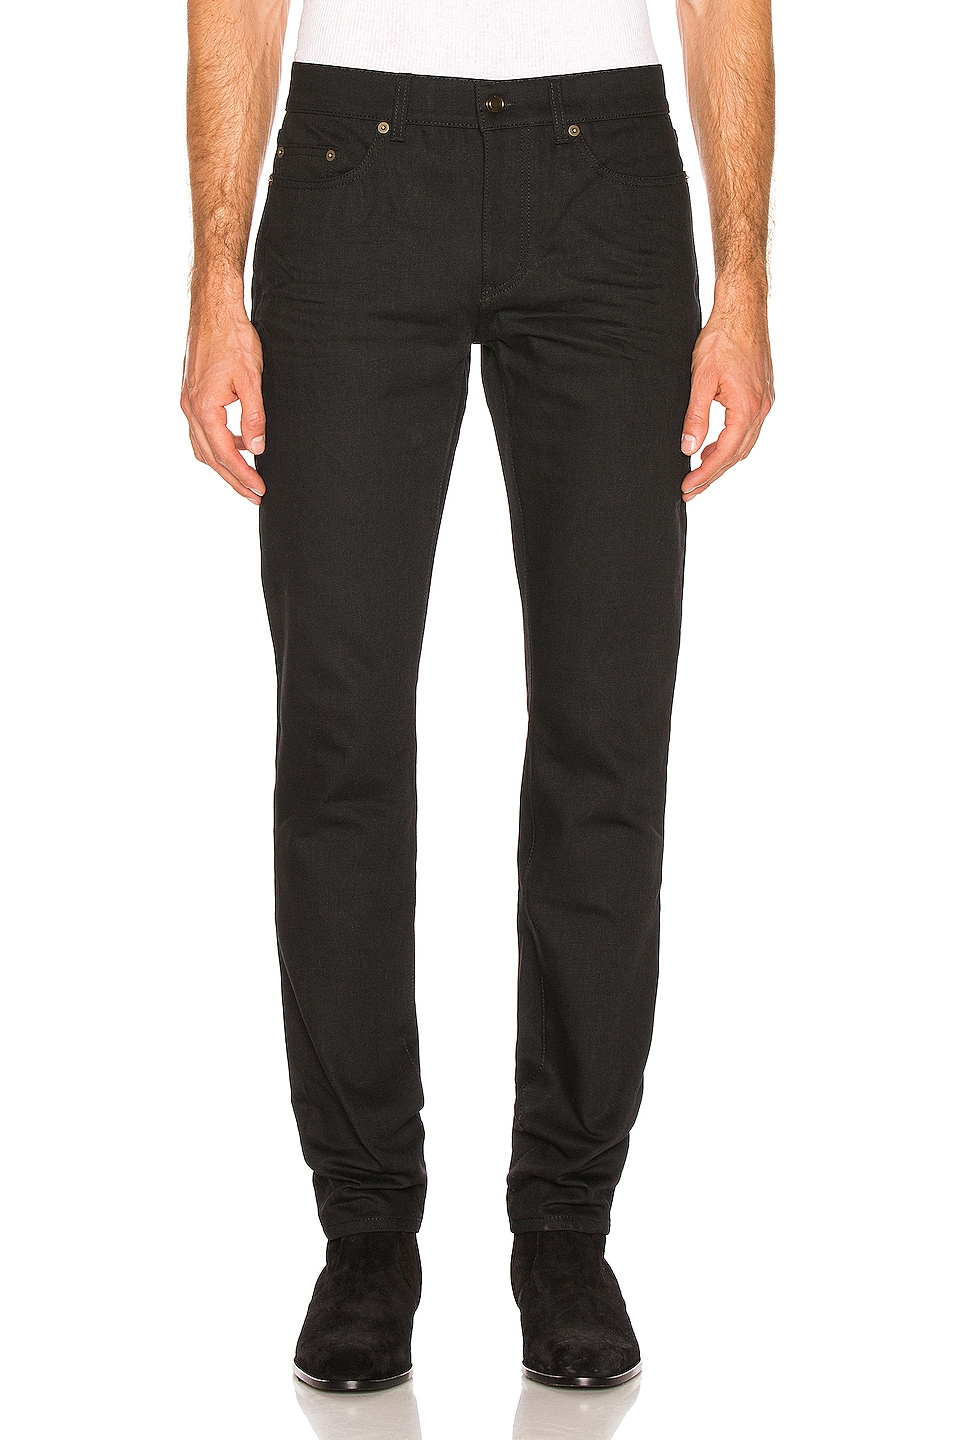 Image 1 of Saint Laurent Low Rise Skinny Jeans in Black